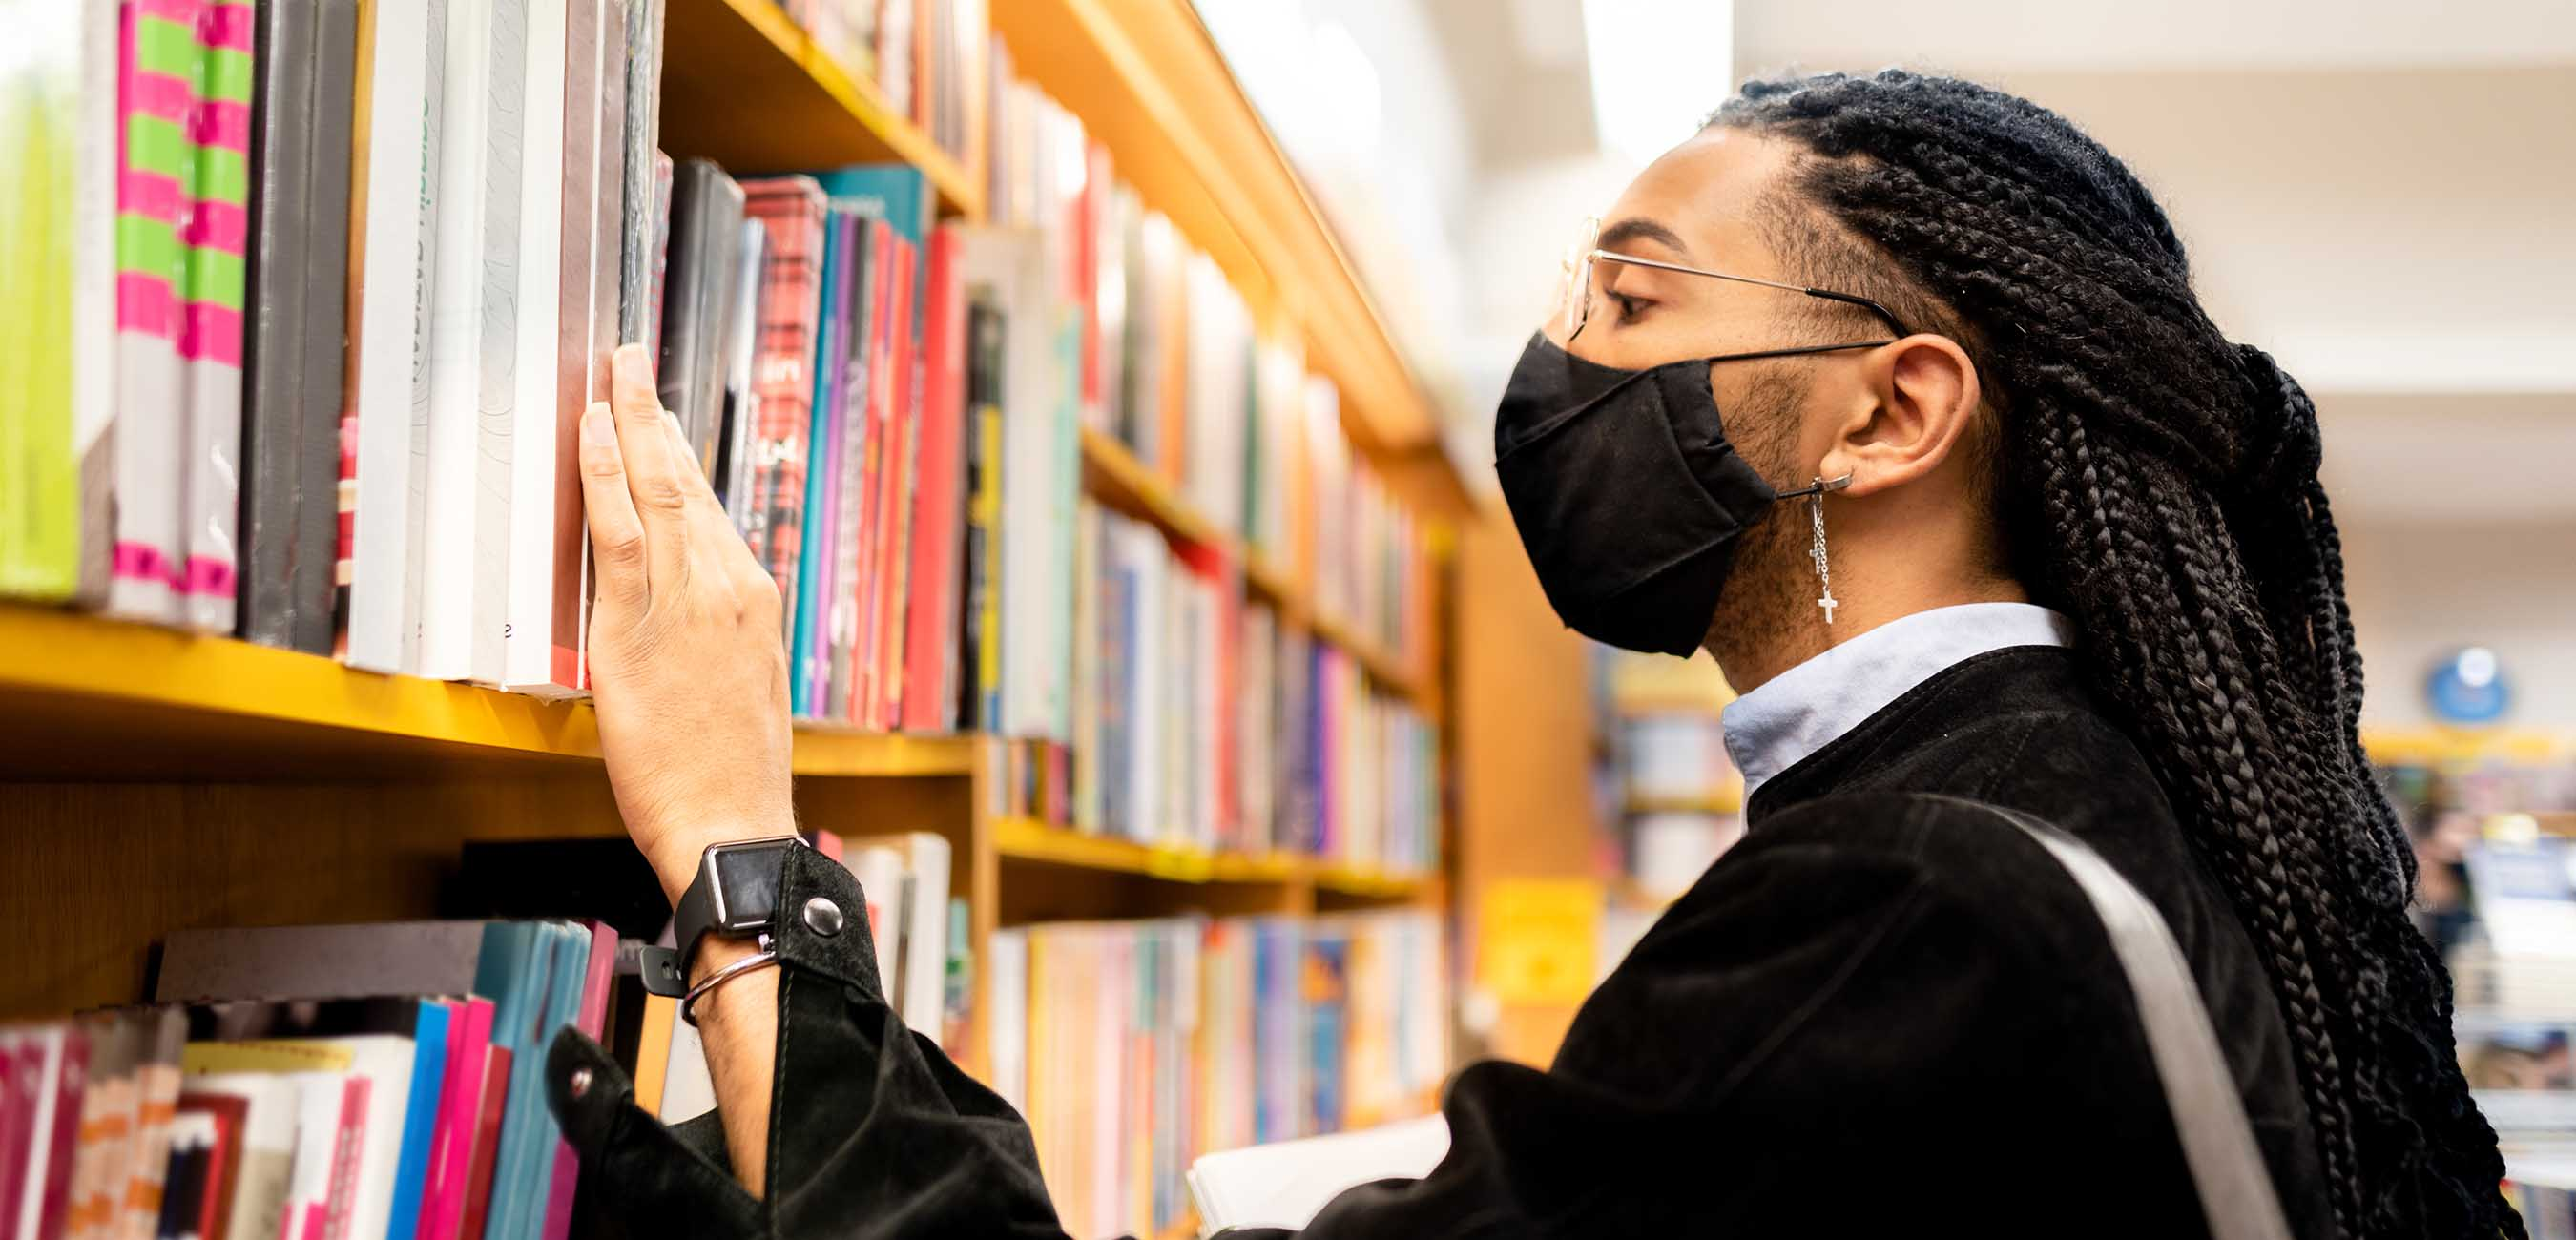 iStock-1289937036 black man browsing library shelves